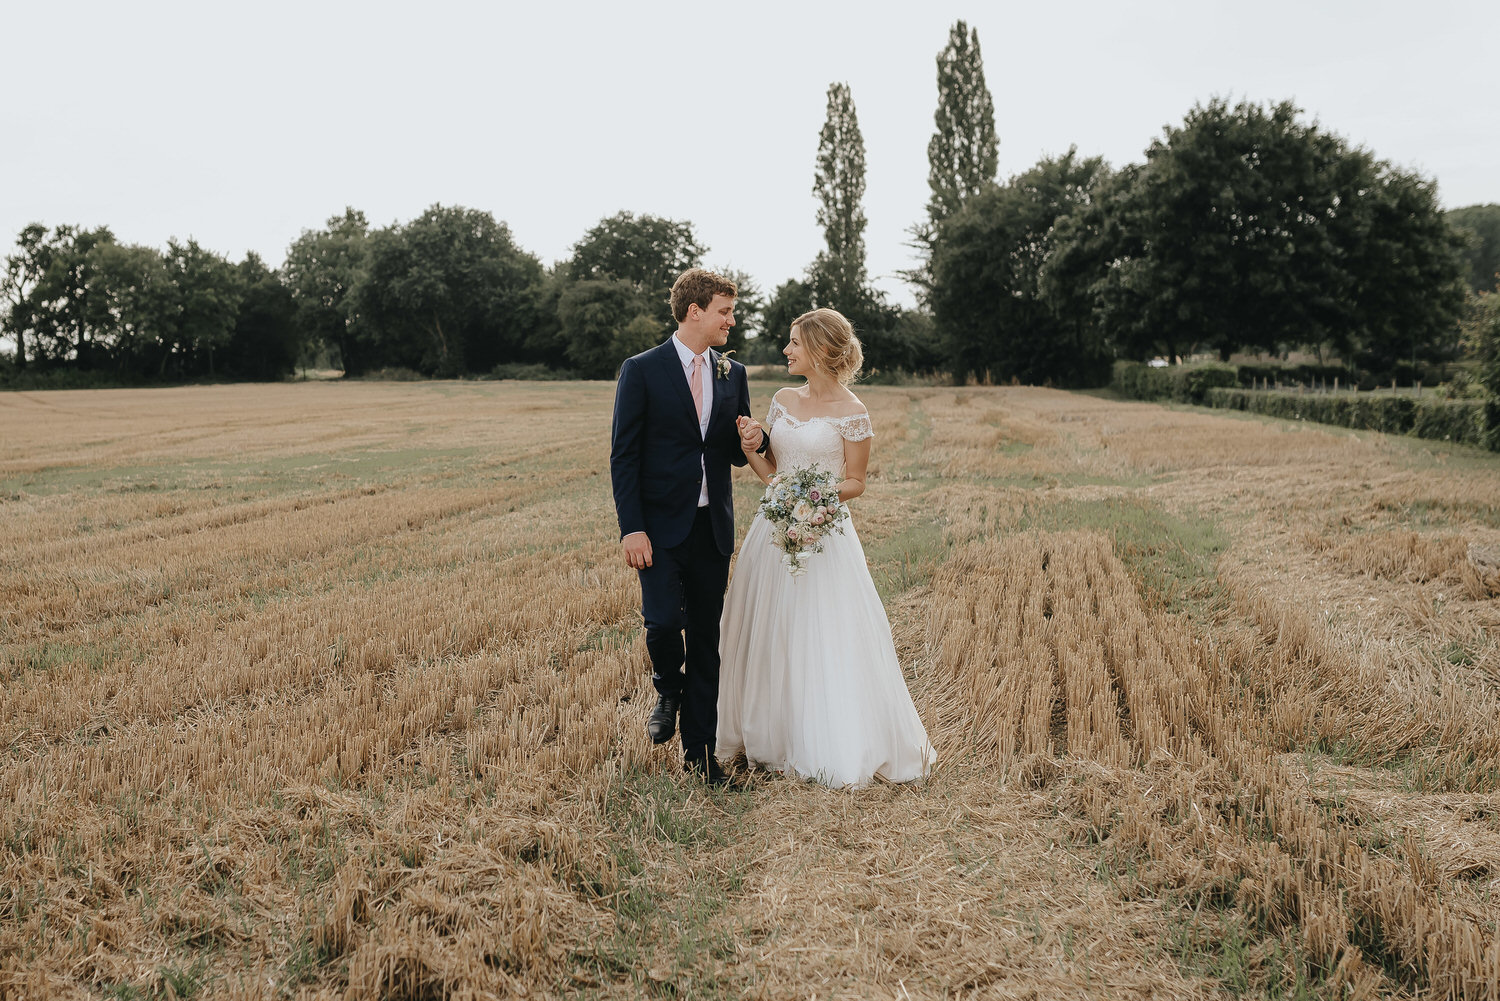 Image of a wedding taken by an Essex wedding photographer that has a fun and relaxed style photographing farm weddings in the Norfolk and Suffolk area.